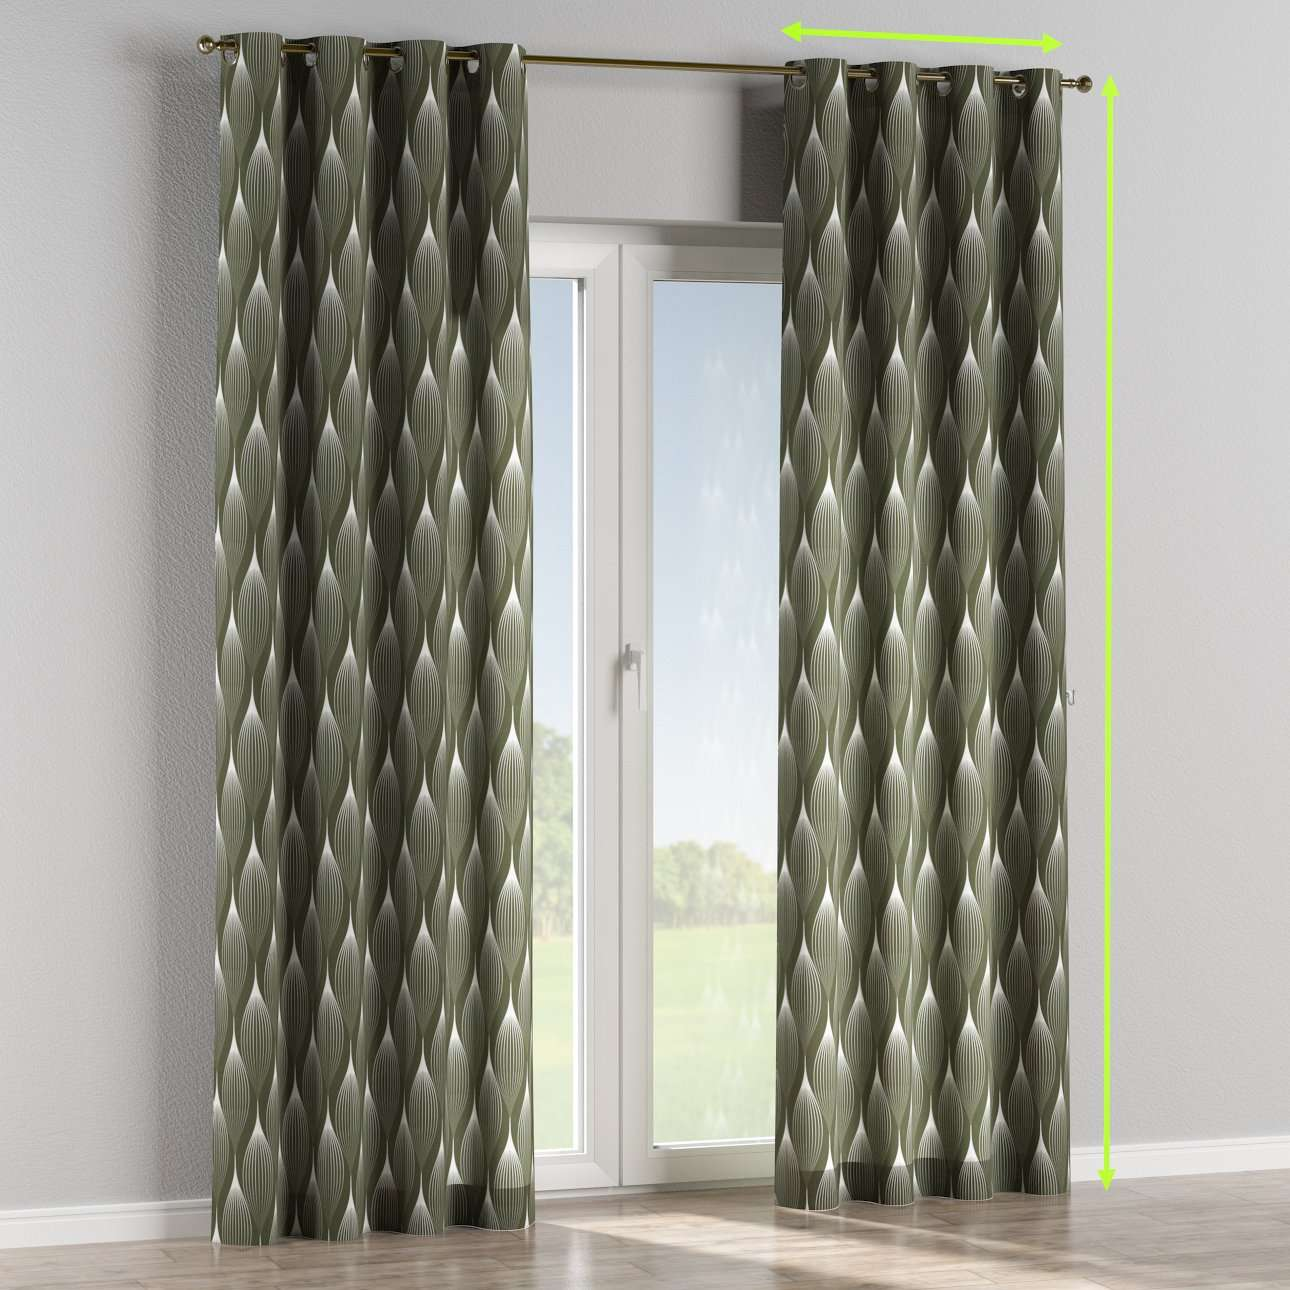 Eyelet lined curtains in collection Freestyle, fabric: 135-20